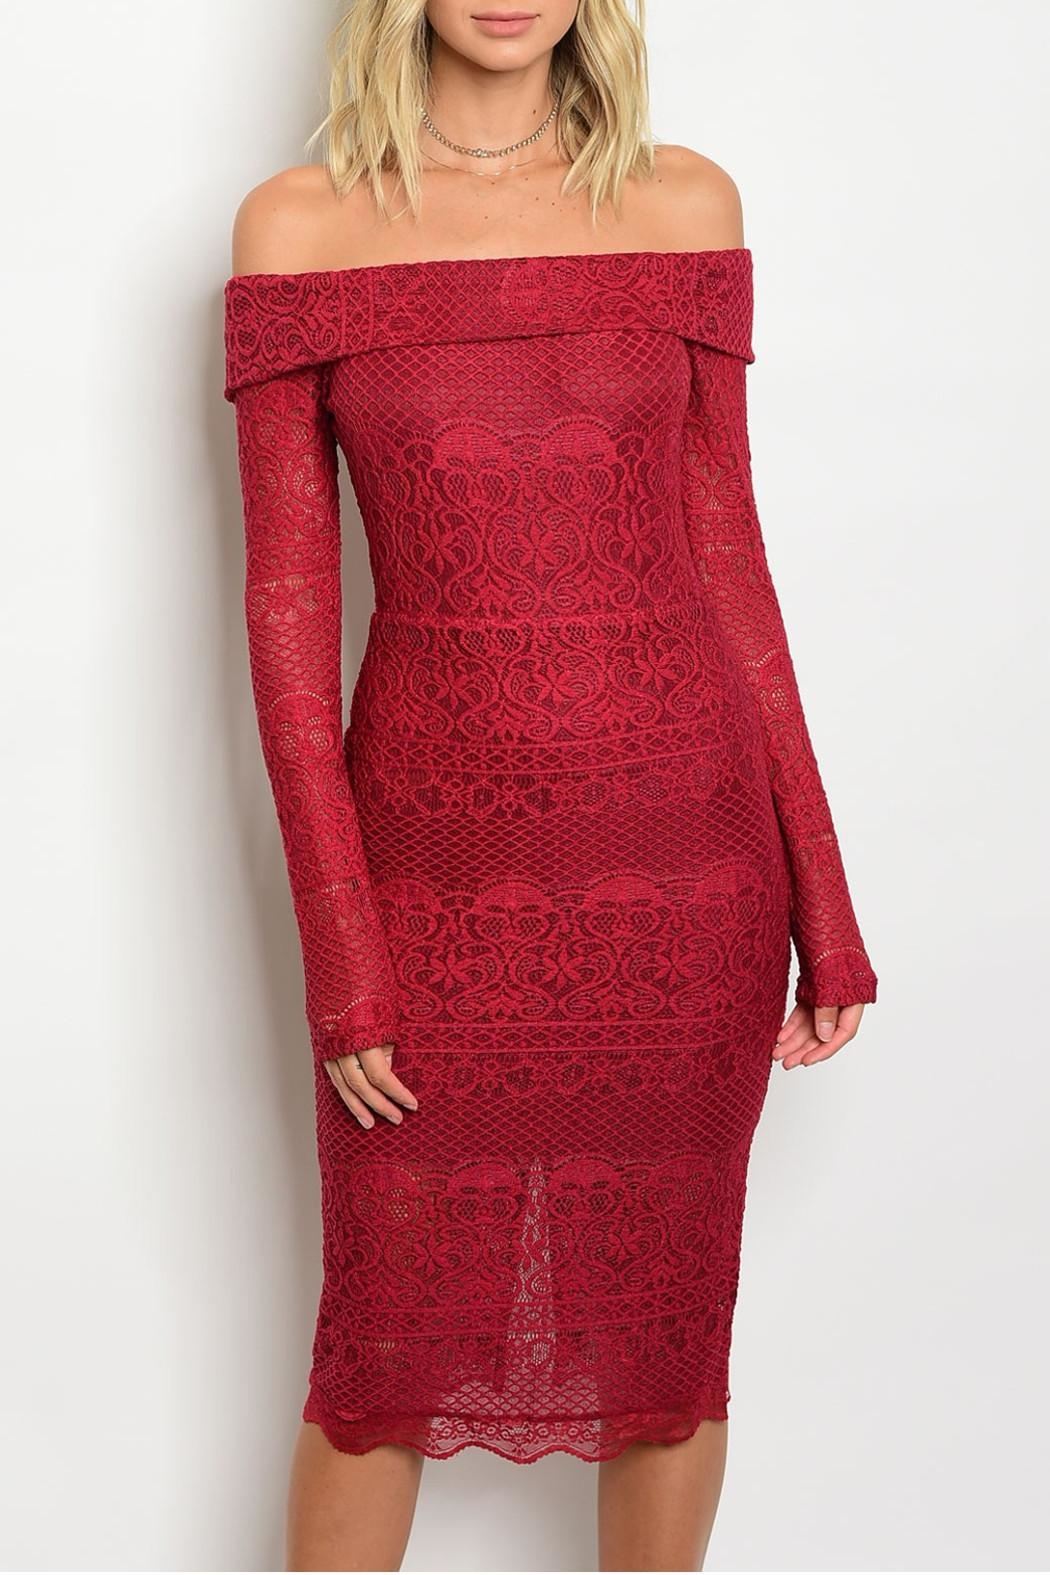 Hommage Red Lace Dress - Main Image